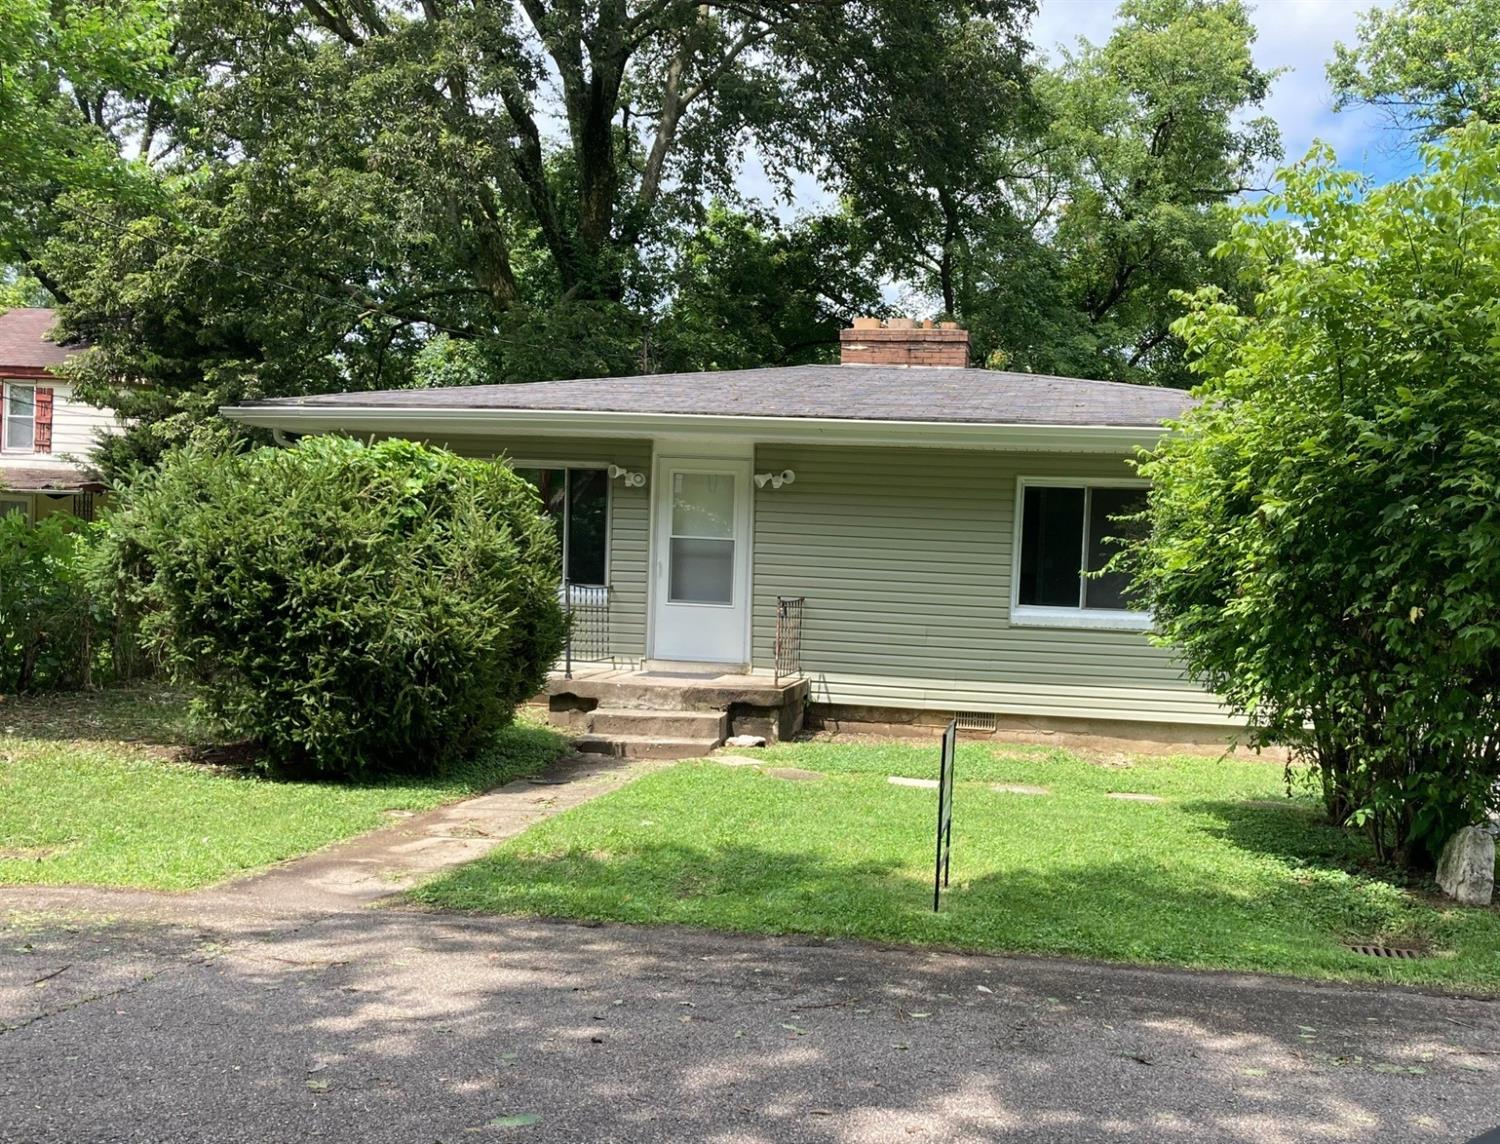 Photo 3 for 38 E Leslie Avenue Woodlawn, OH 45215